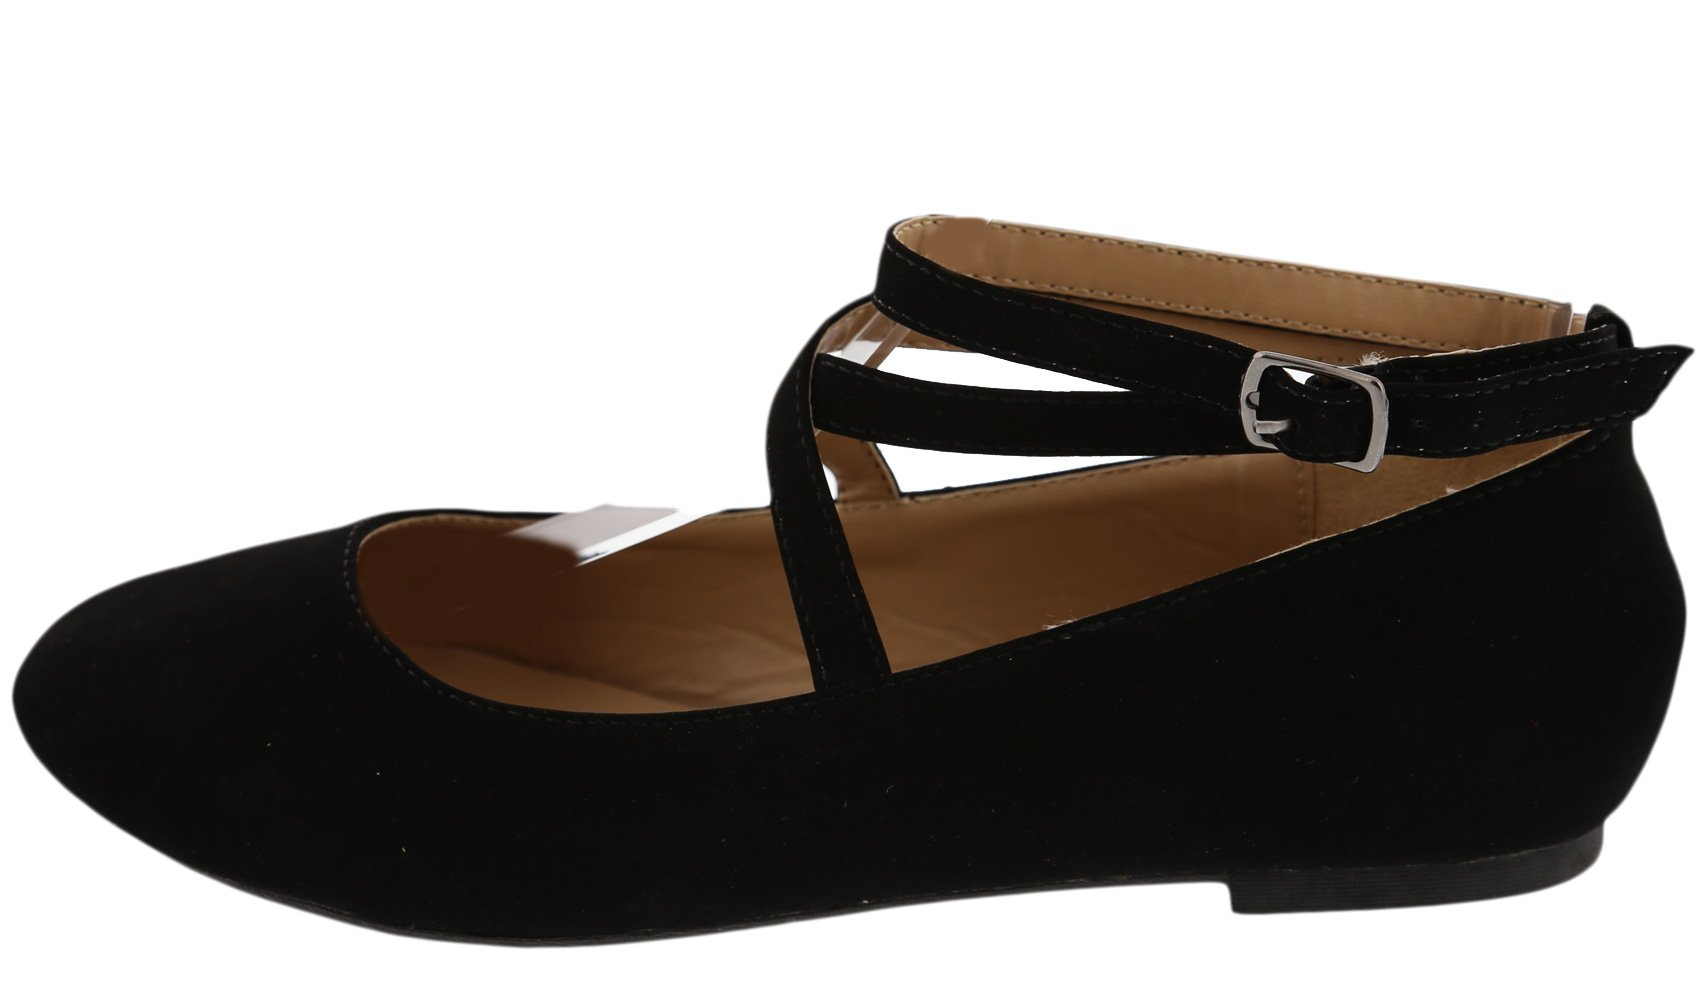 Top Moda Women's Brea-3 Strappy Ballet Flat (8 B(M) US, Black) by Top Moda (Image #2)